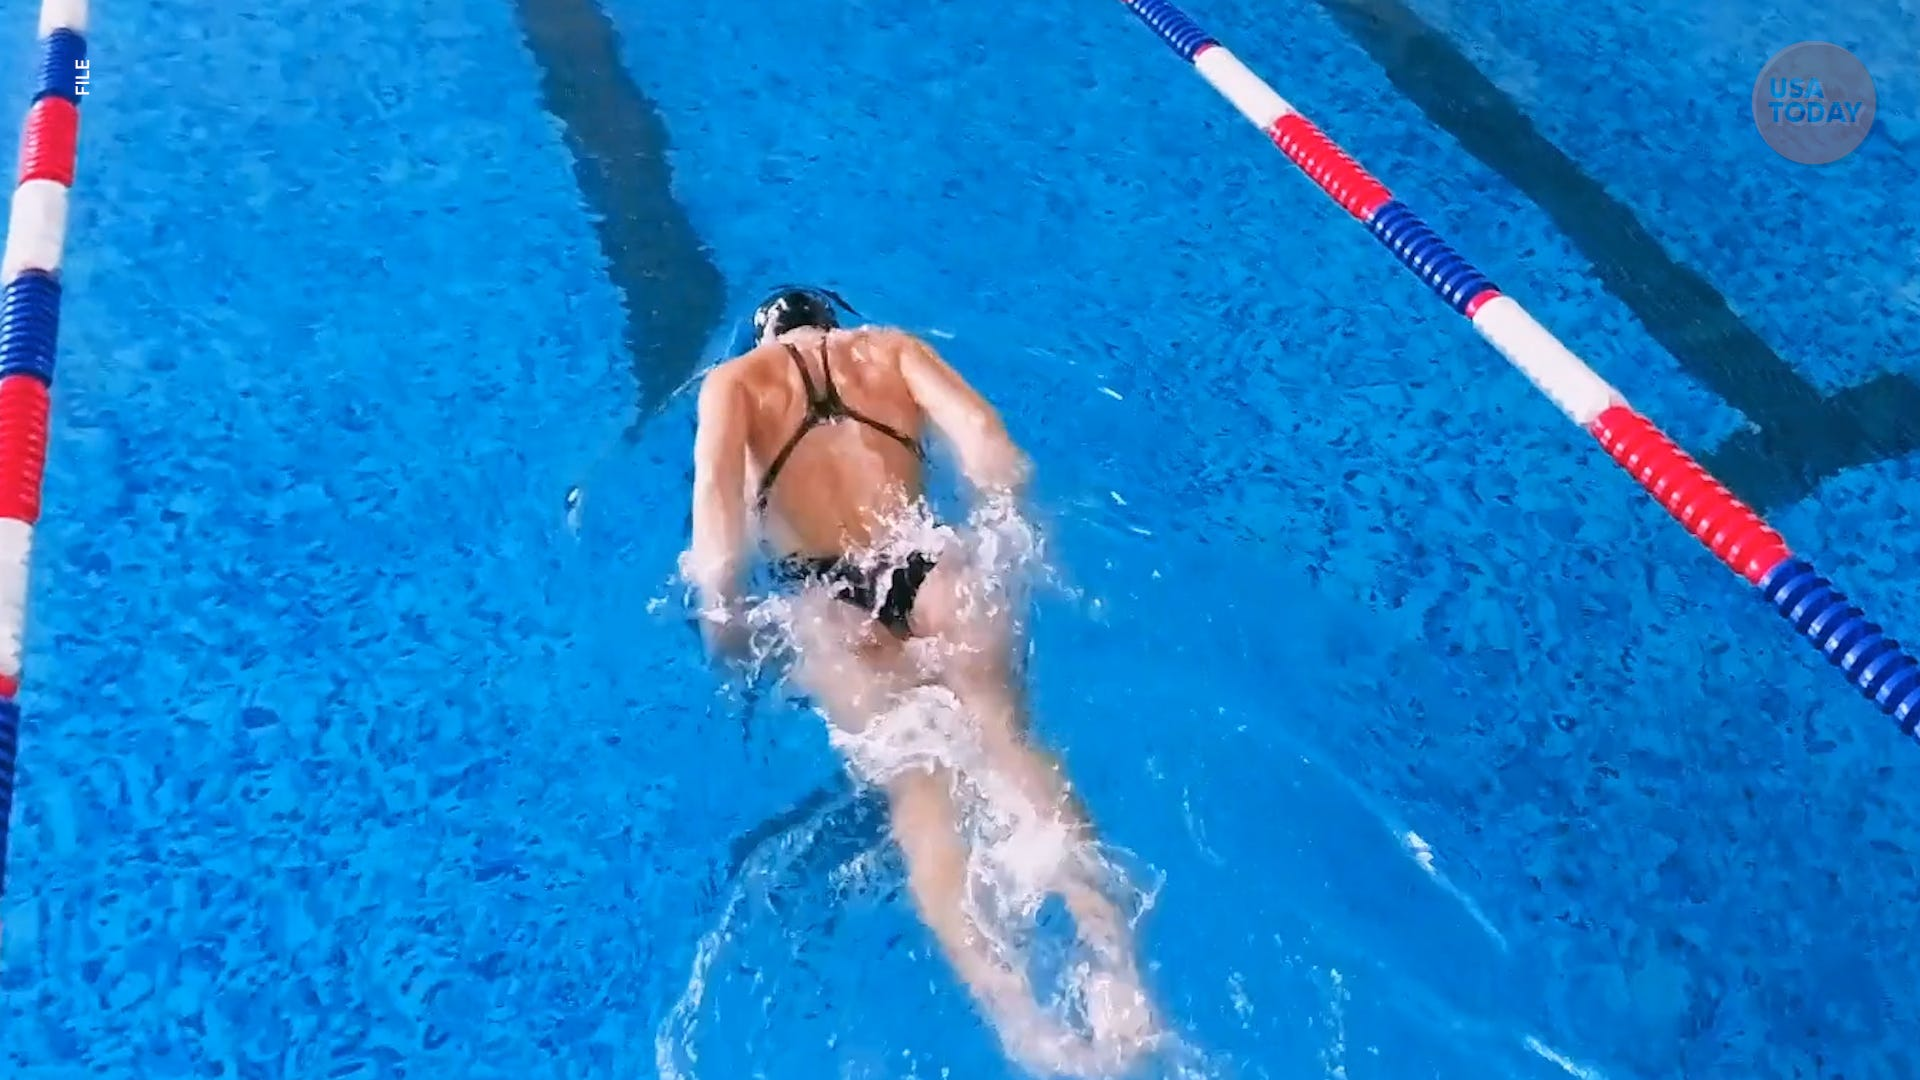 Teen swimmer disqualified after referee claims swimsuit exposes too much